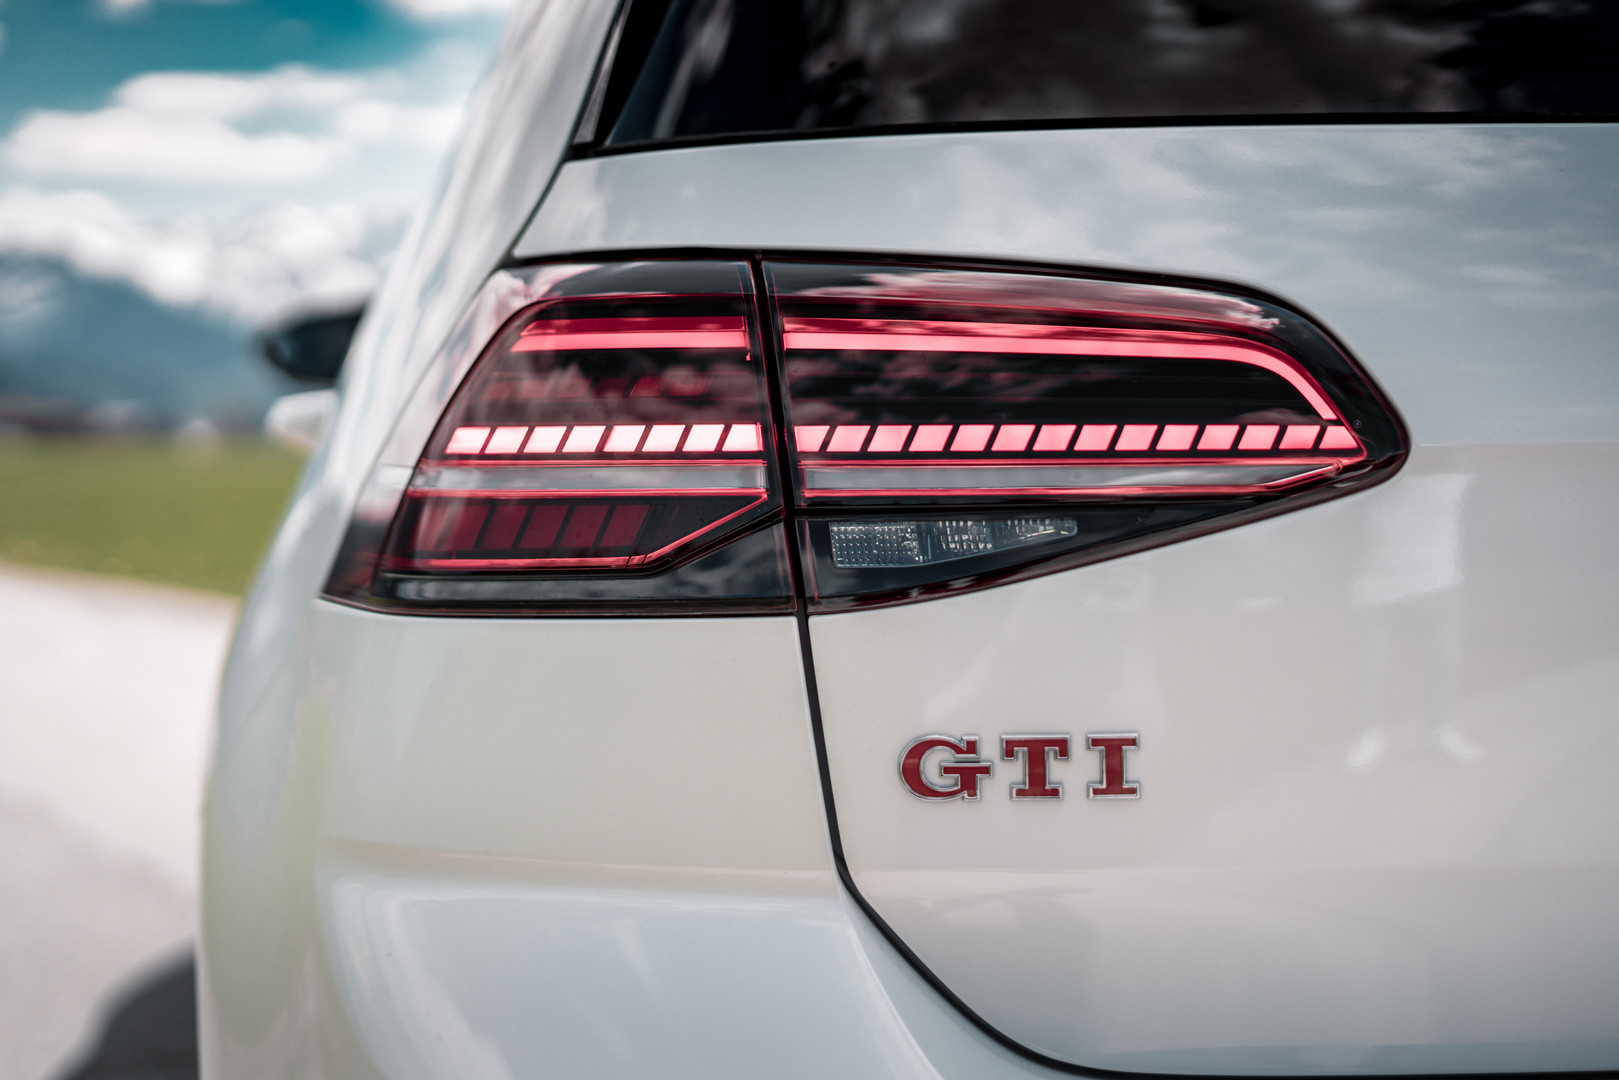 Golf GTI Badge Rear